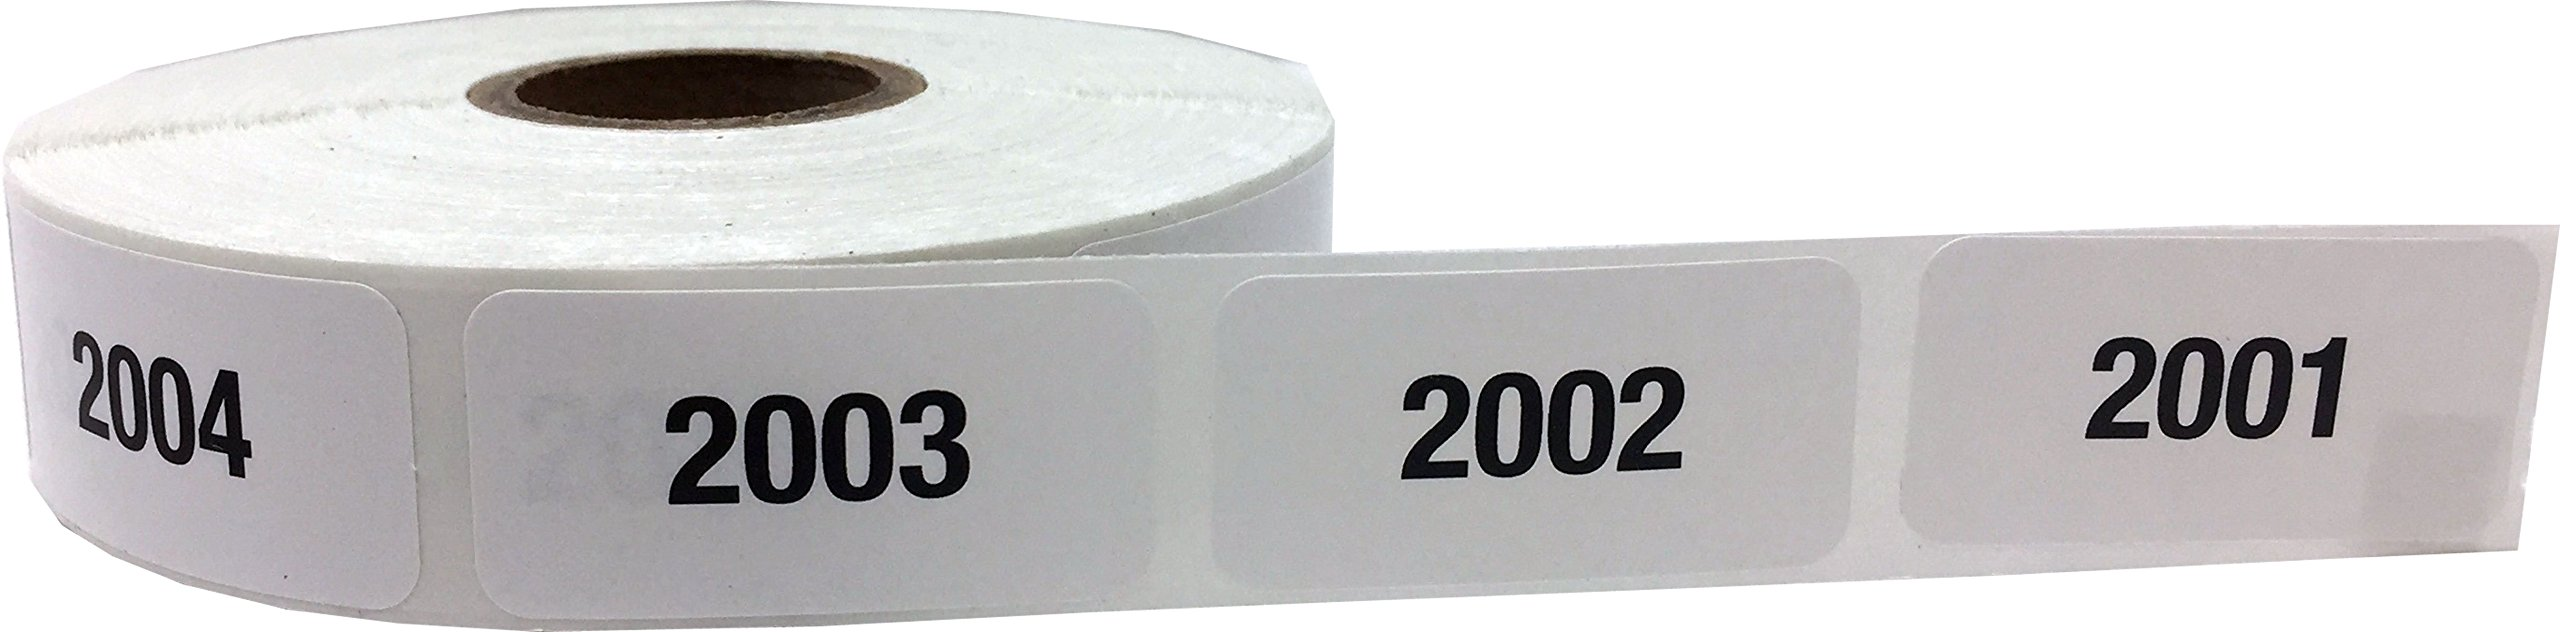 Consecutive Number Labels Bulk Pack Numbers 1 Through 10,000 White/Black .75 x 1.5 Rectangle Small Number Stickers For Inventory by InStockLabels.com (Image #5)